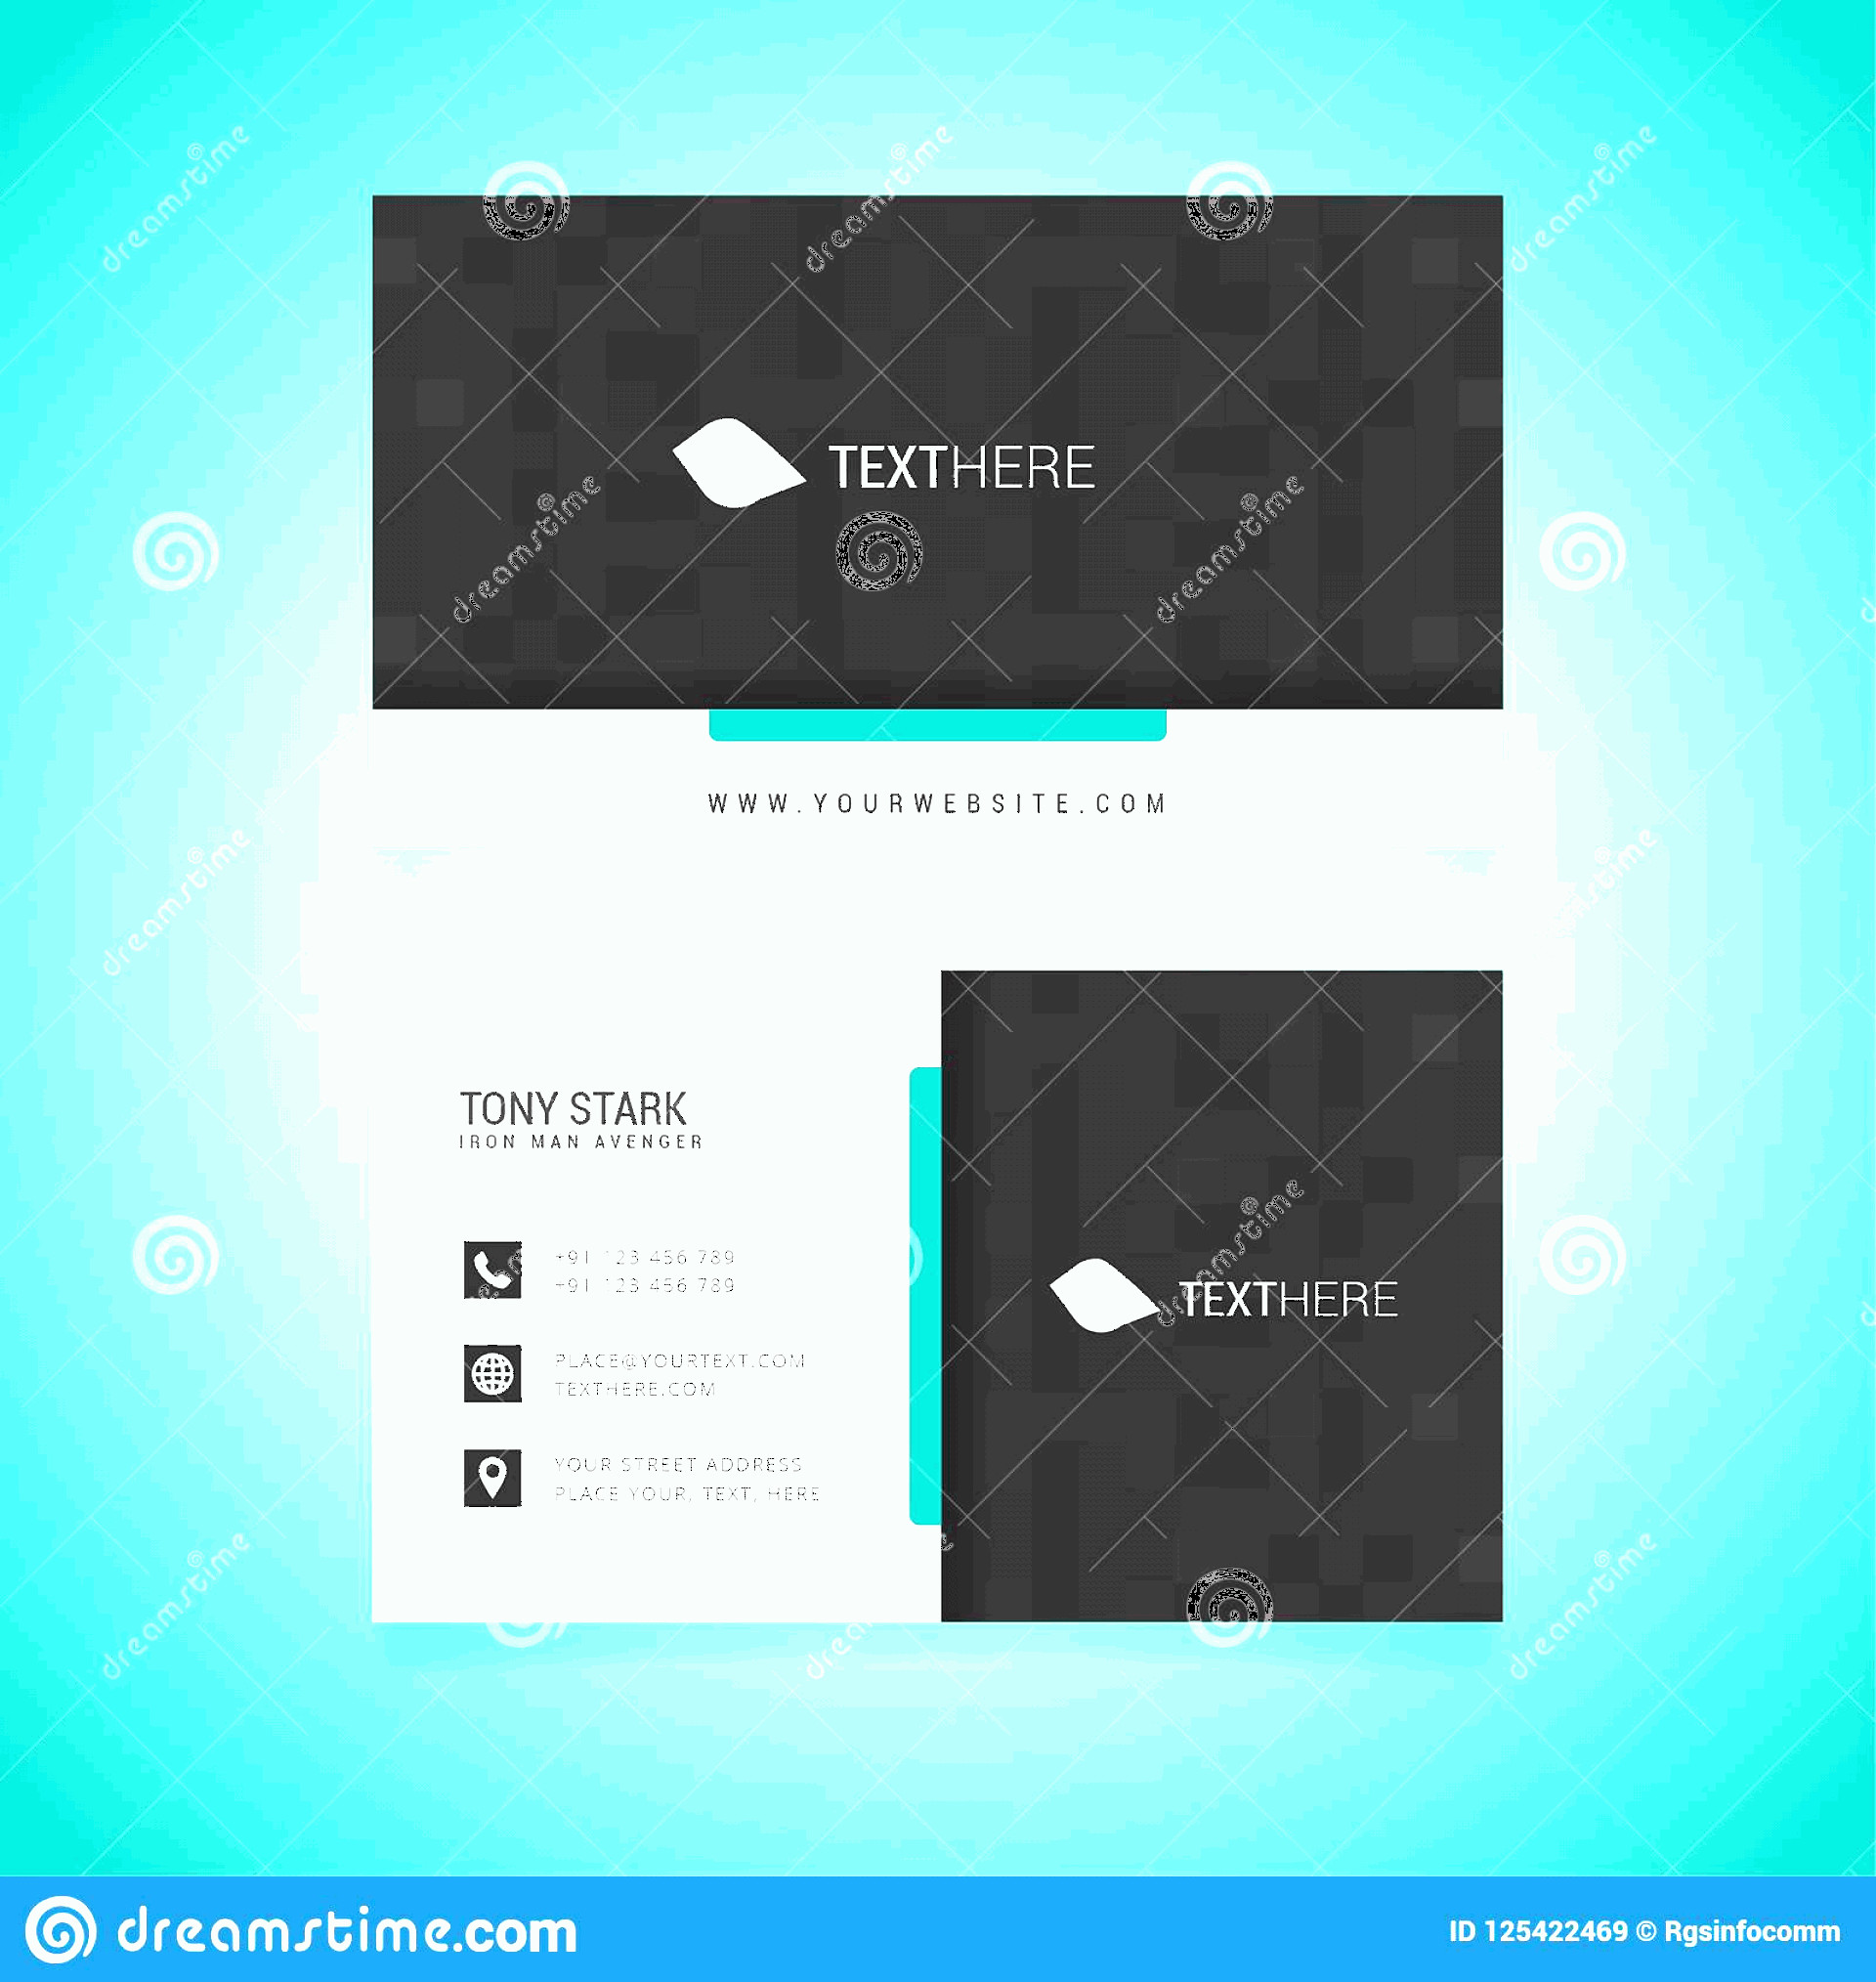 Vector In Adobe: Business Card Vector Template Was Created Adobe Illustrator You Can Download As Eps Format Edit Corel Draw Image